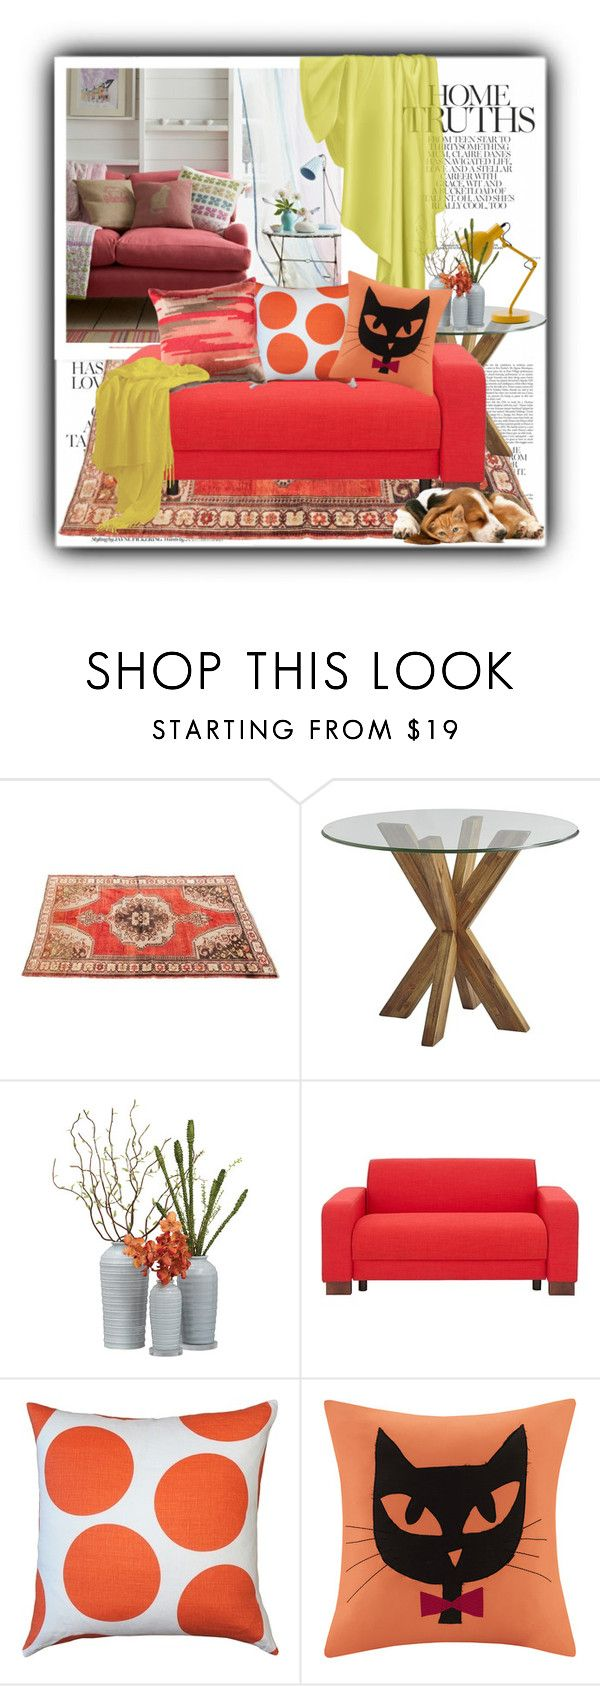 """""""A Summer Room"""" by terrelynthomas ❤ liked on Polyvore featuring interior, interiors, interior design, home, home decor, interior decorating, Pier 1 Imports, Pillow Decor, Madison Park and Loloi Rugs"""